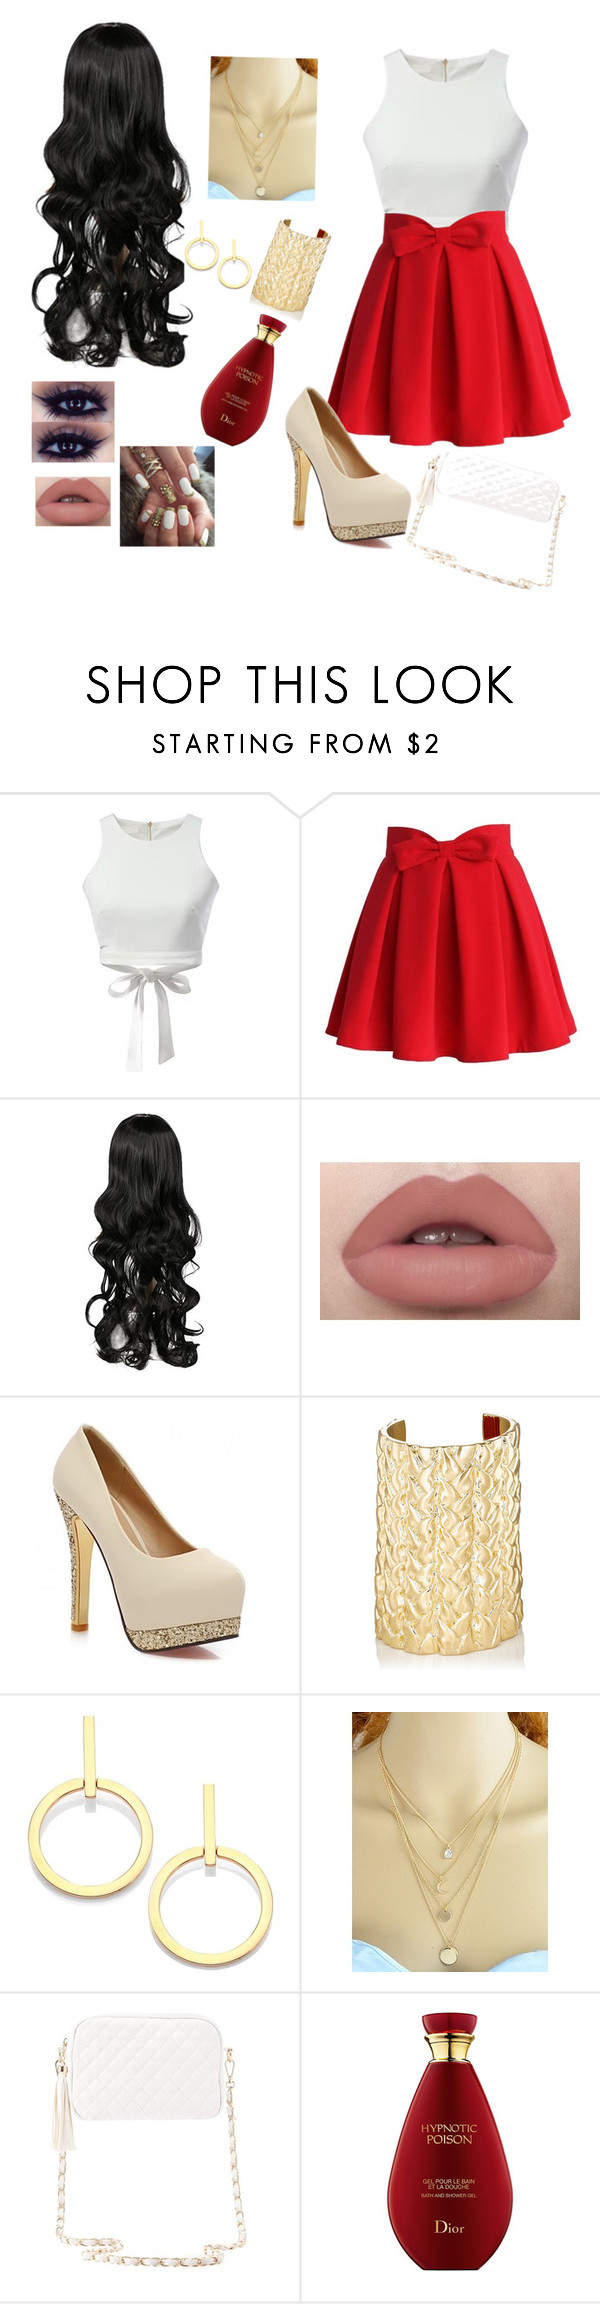 """#Walker175"" by magconfocuss ❤ liked on Polyvore featuring WithChic, Chicwish, Jennifer Fisher, Vita Fede and Charlotte Russe"